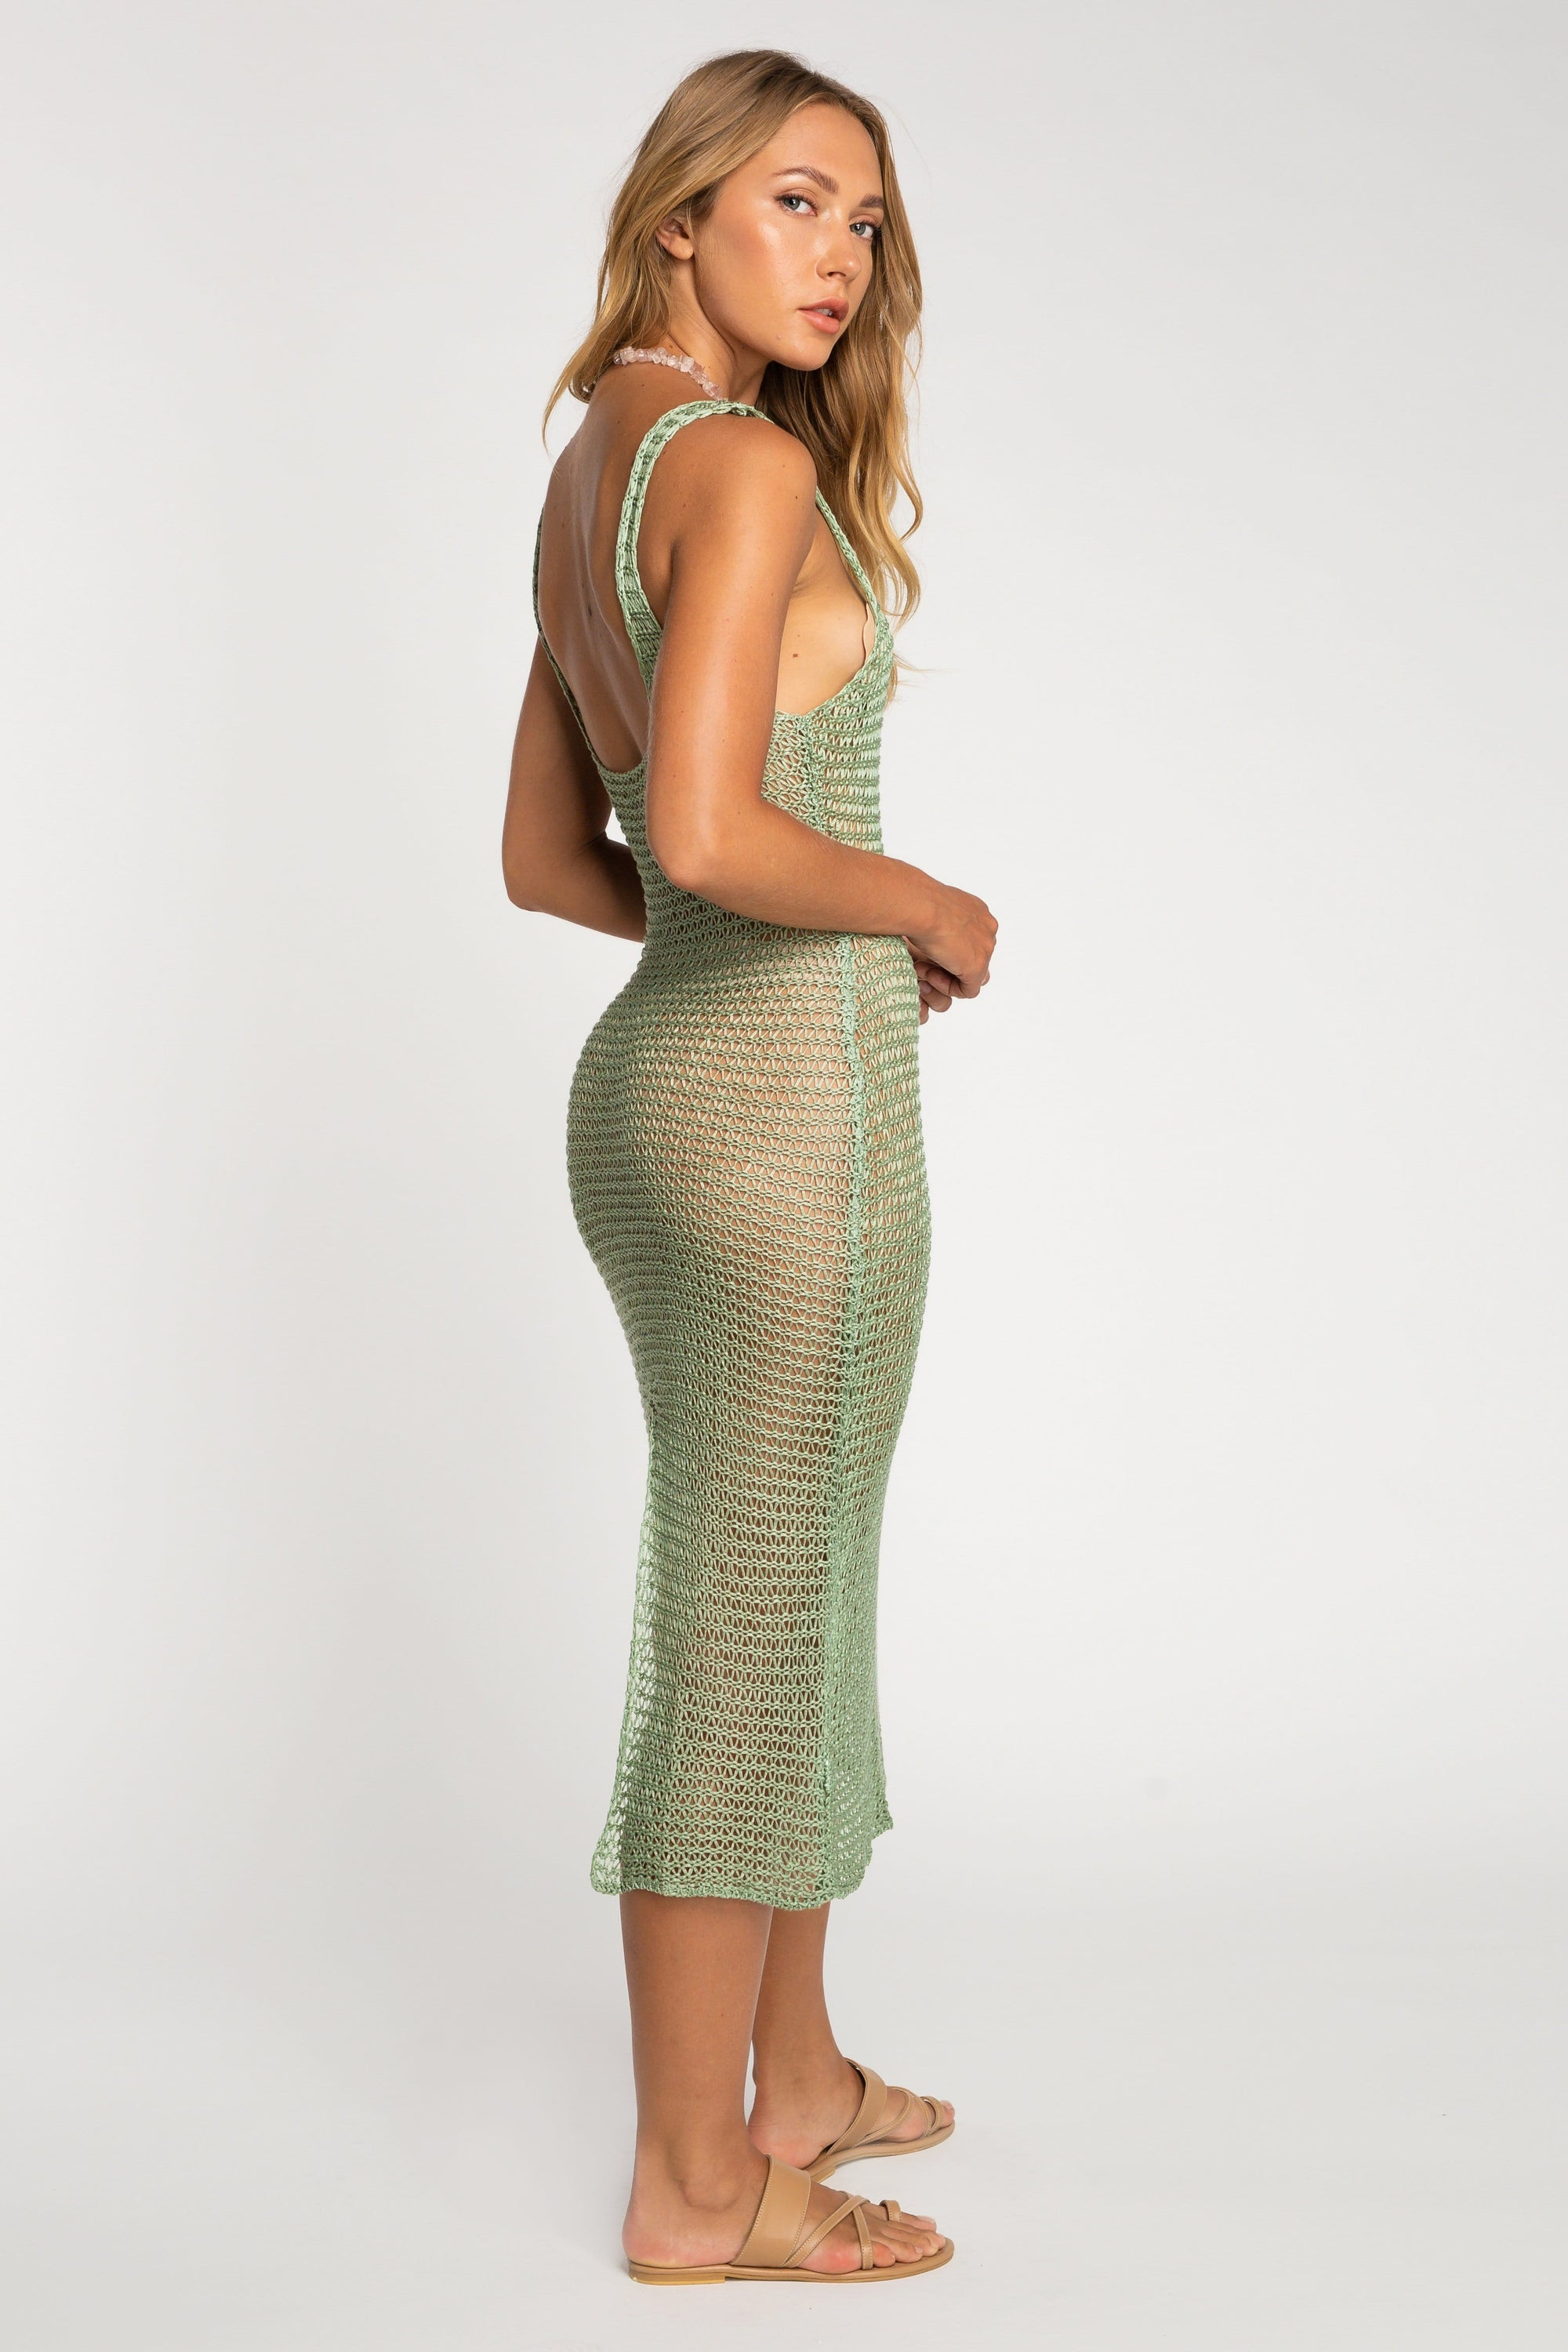 Karina Knit Dress - Dress - LOST IN PARADISE